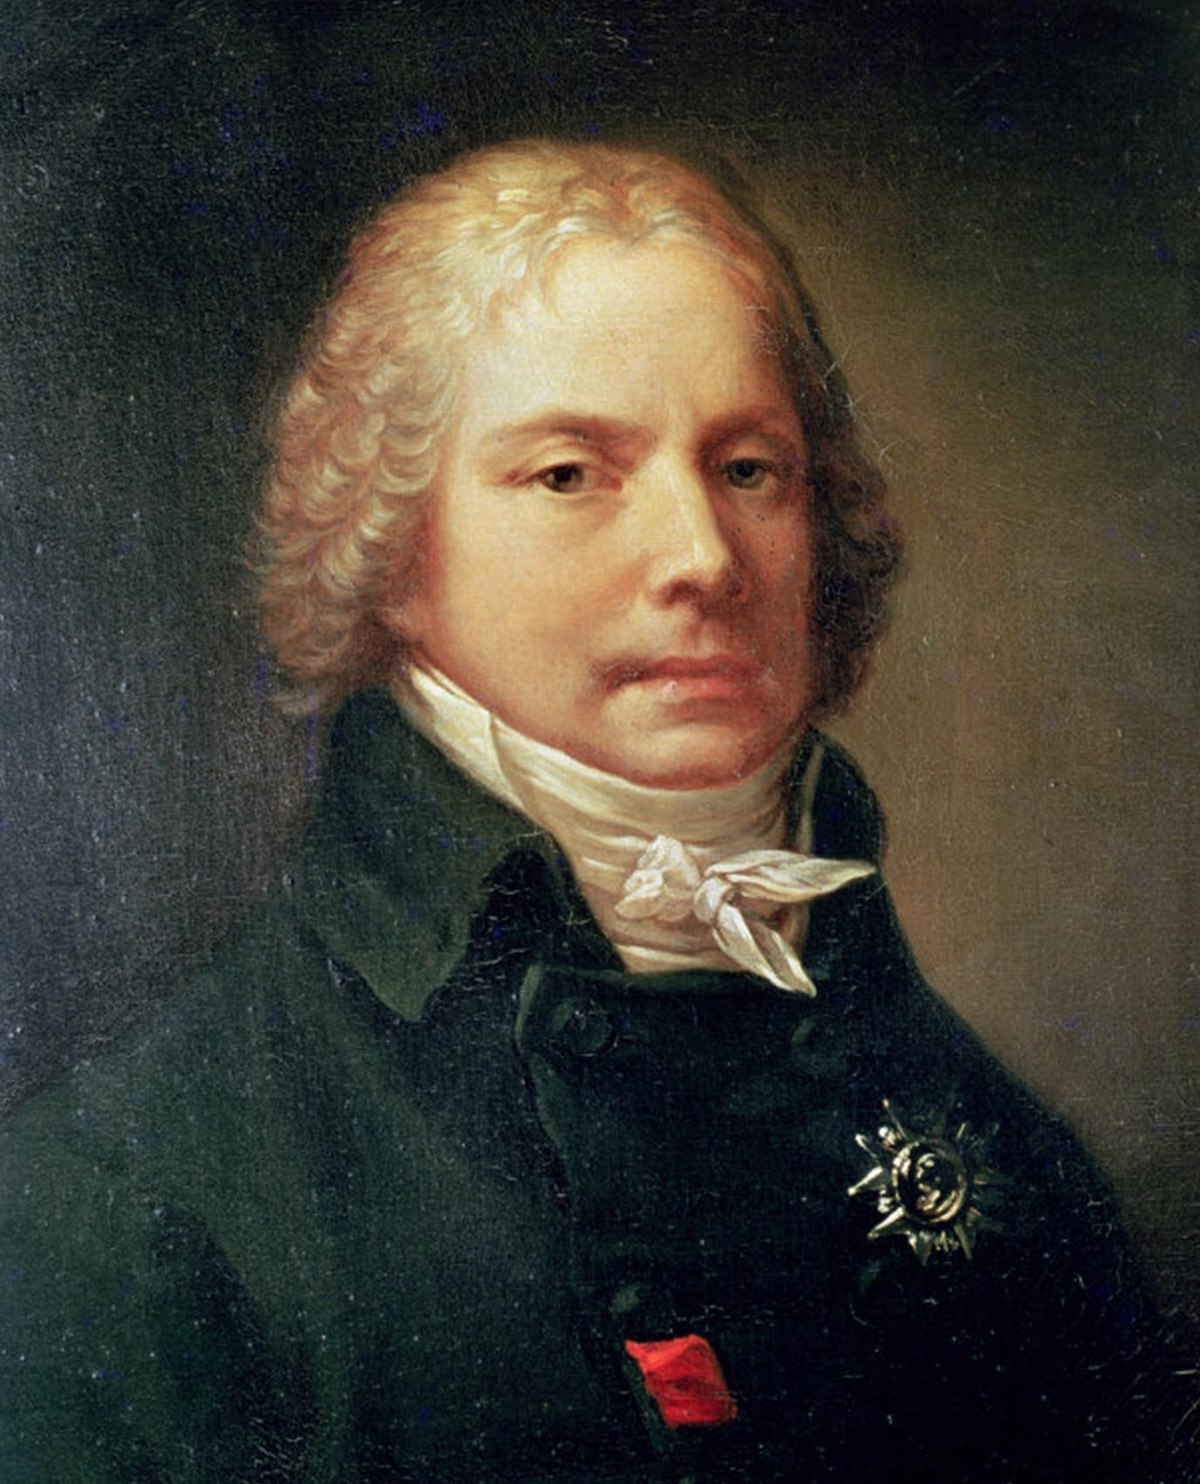 https://upload.wikimedia.org/wikipedia/commons/thumb/c/cb/Talleyrand_01.jpg/1200px-Talleyrand_01.jpg